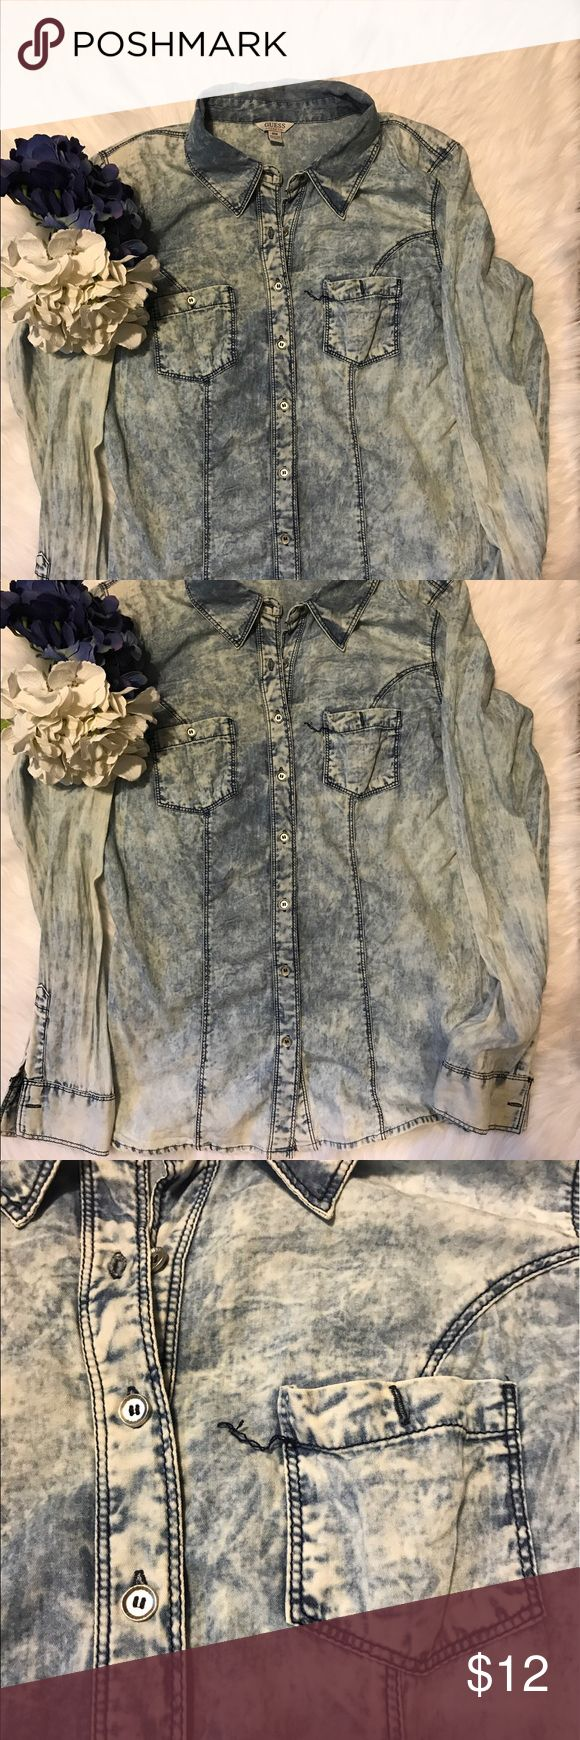 Guess Denim top Acid wash denim long sleeve top with silver buttons. Thread on front pocket is unraveling (shown in pic). Size M. Guess Tops Button Down Shirts